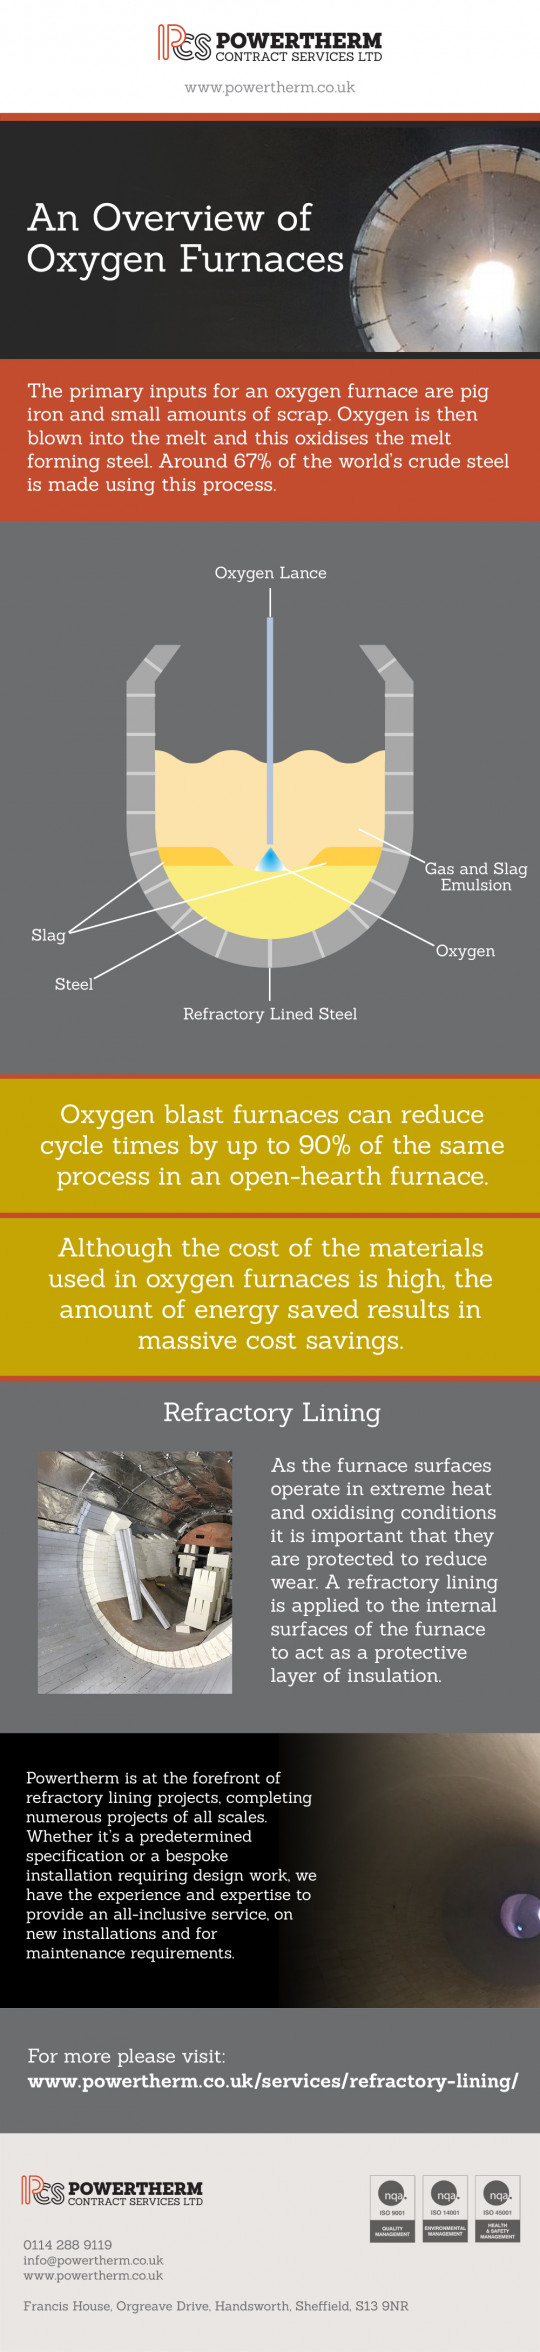 An Overview of Oxygen Furnaces